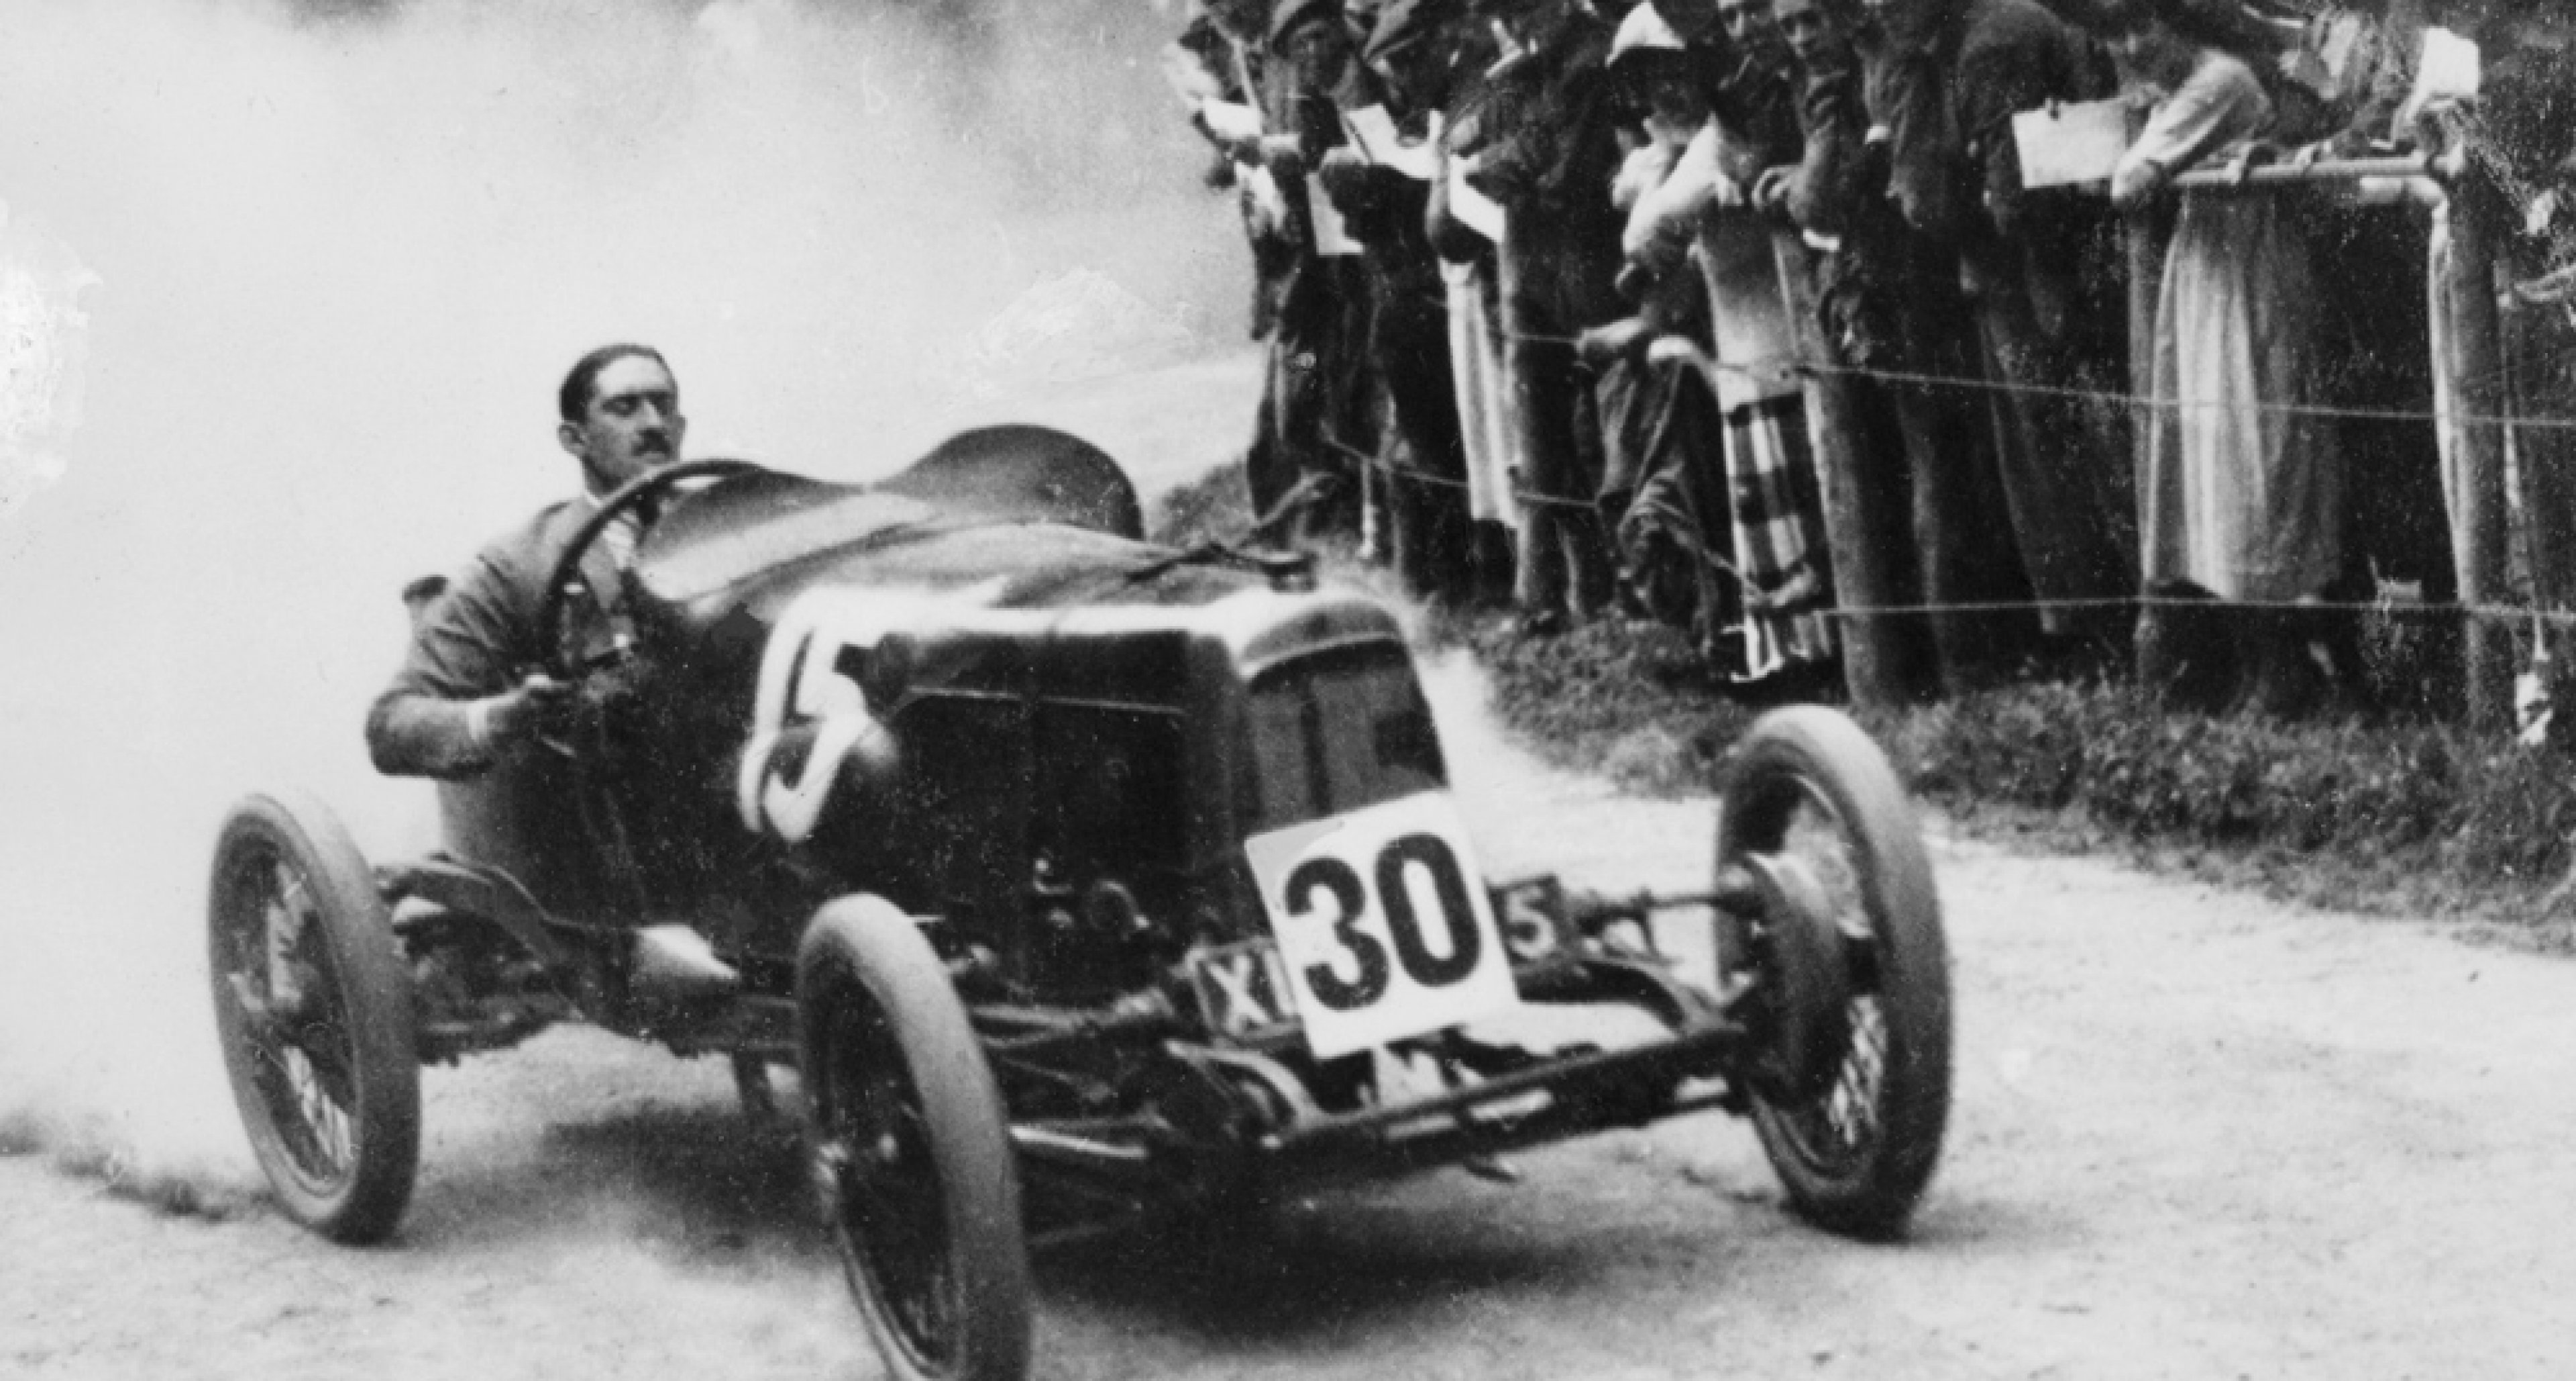 Zborowski driving a 1922 Aston Martin 1.5 litre 'Strasbourg' at Shelsey Walsh around 1922. The car was originally built for the 1922 French Grand Prix and is the oldest Aston Martin still running.